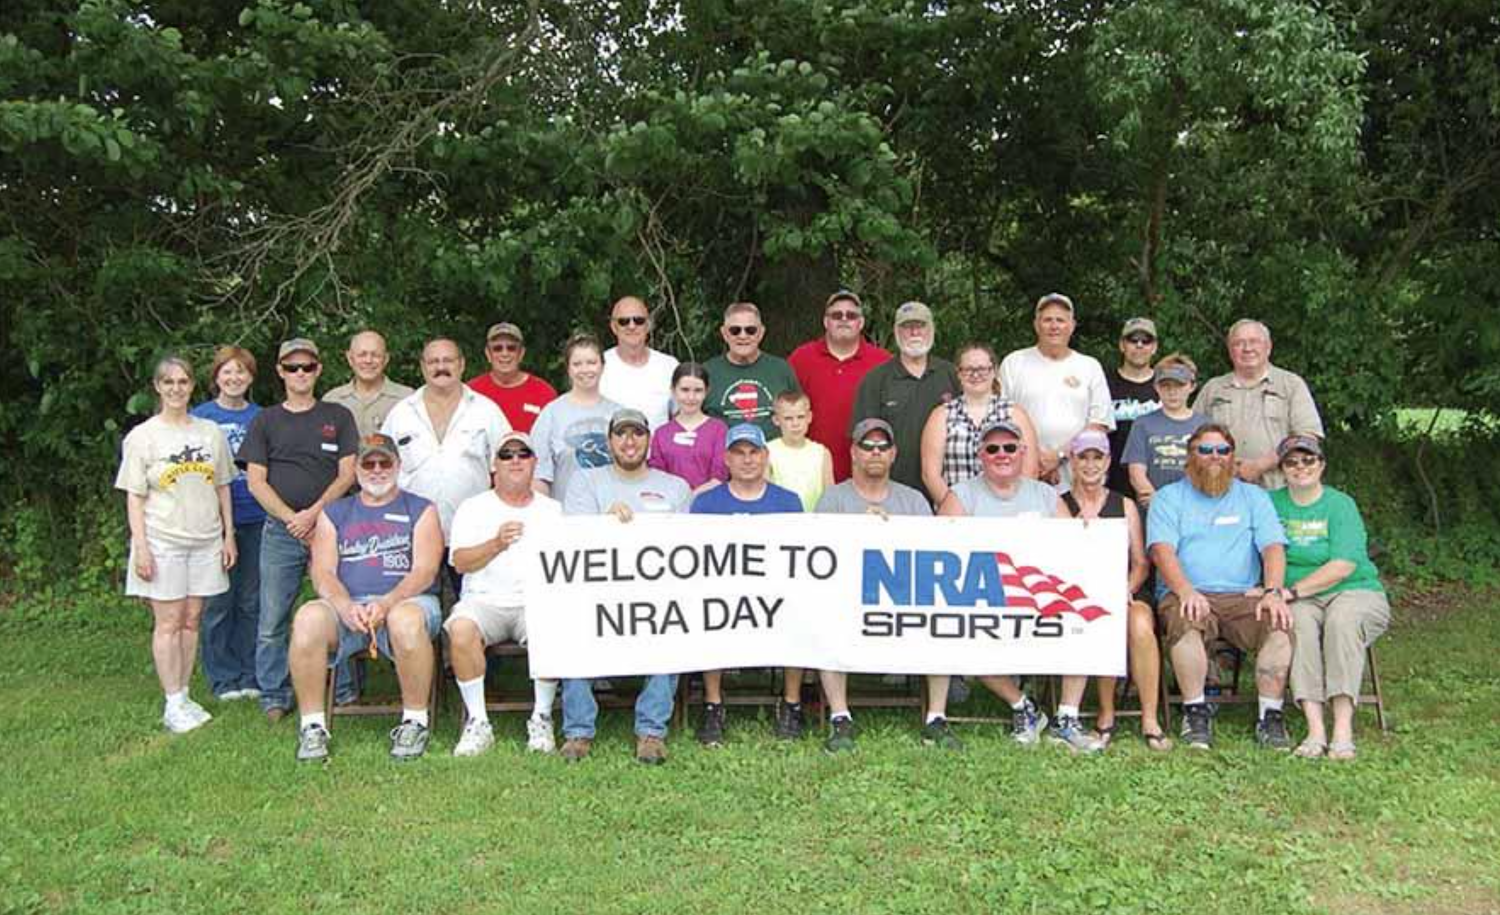 Carmi Times: NRA Day a Big Success at Illinois' Carmi Rifle Club